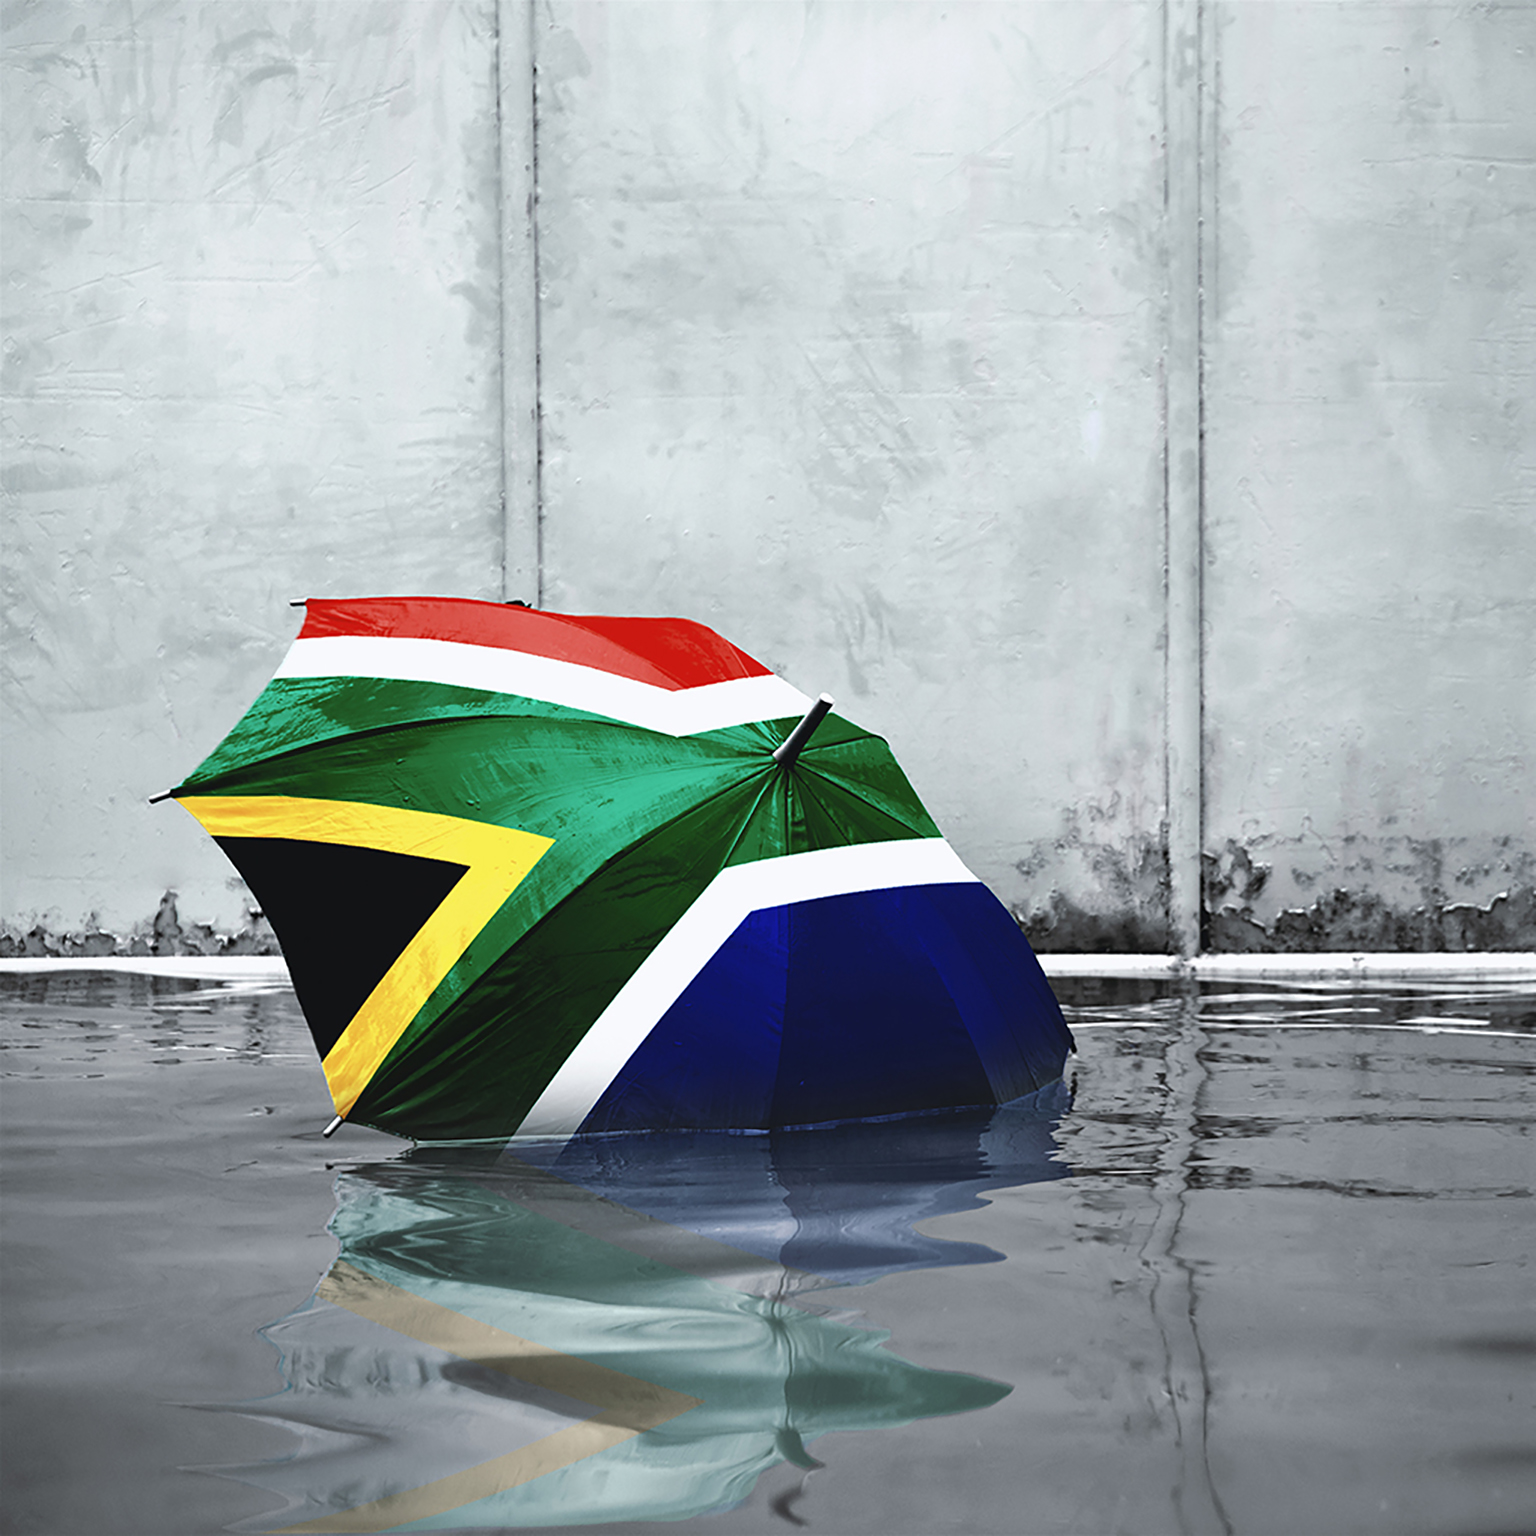 beyond-covid-19:-charting-the-road-to-recovery-for-south-african-insurers